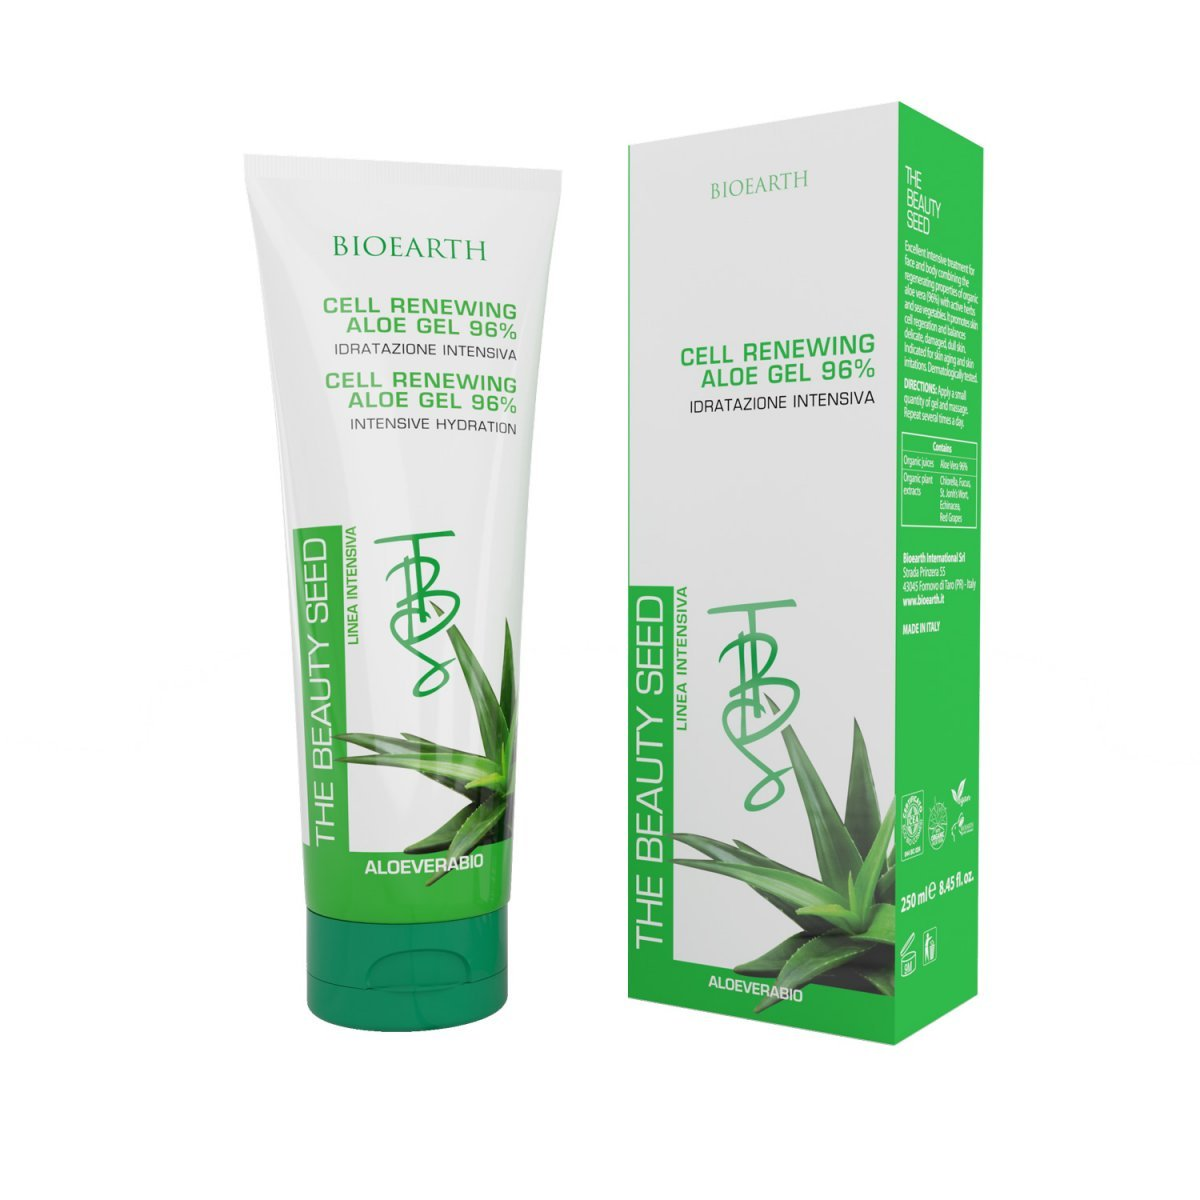 TBS Cell Renewing Aloe Gel 96% Idratazione Intensiva